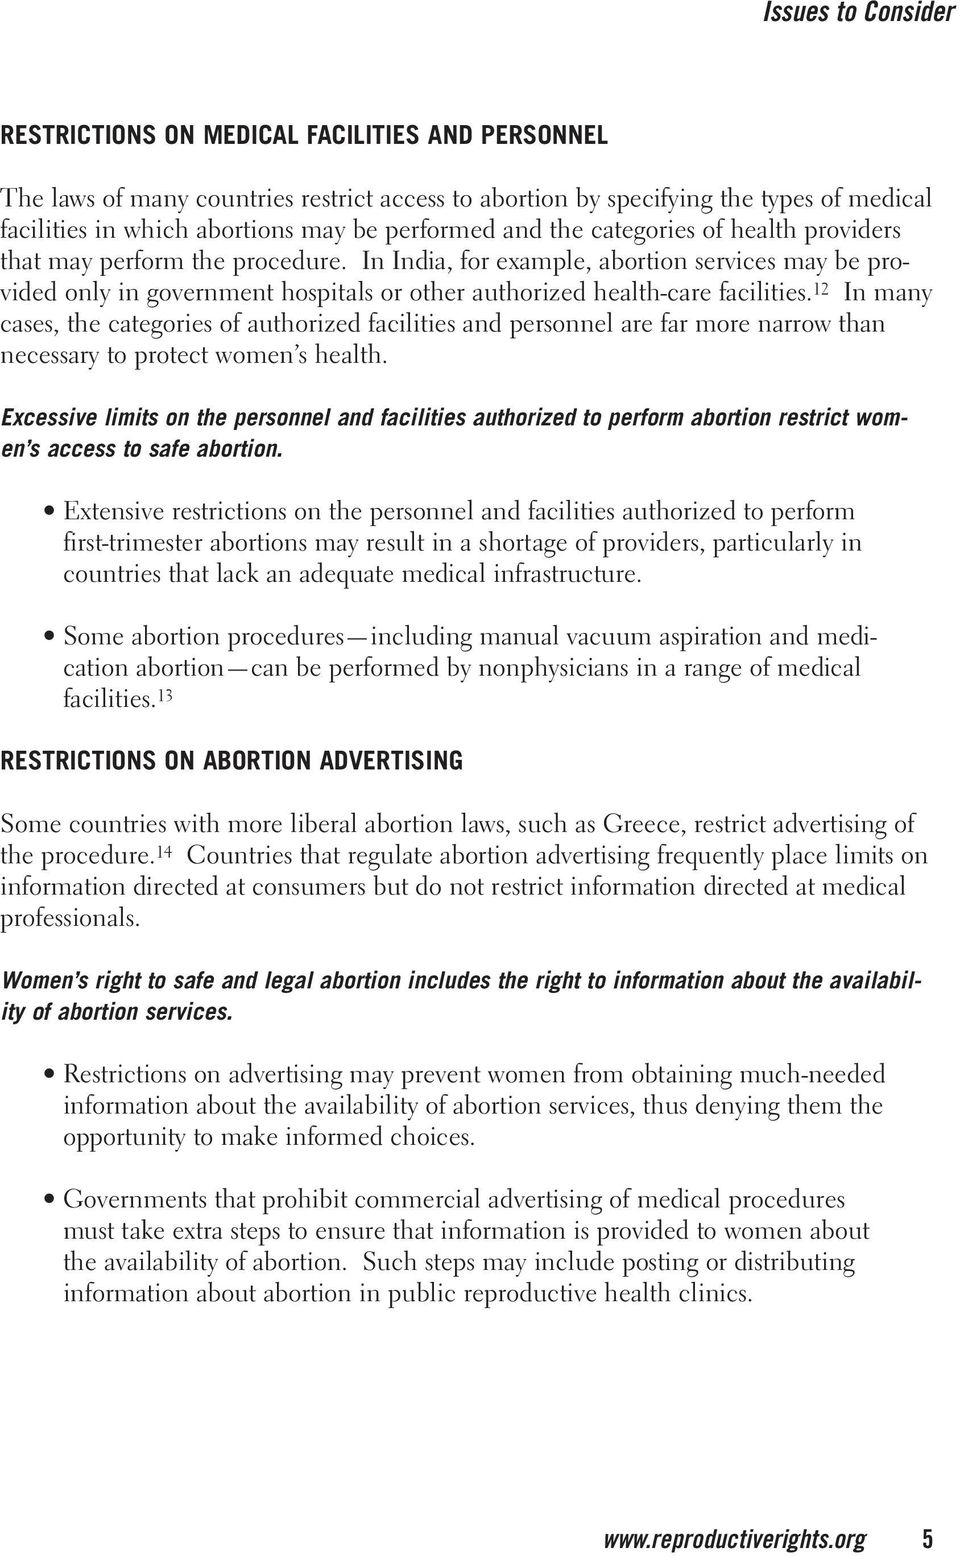 In India, for example, abortion services may be provided only in government hospitals or other authorized health-care facilities.